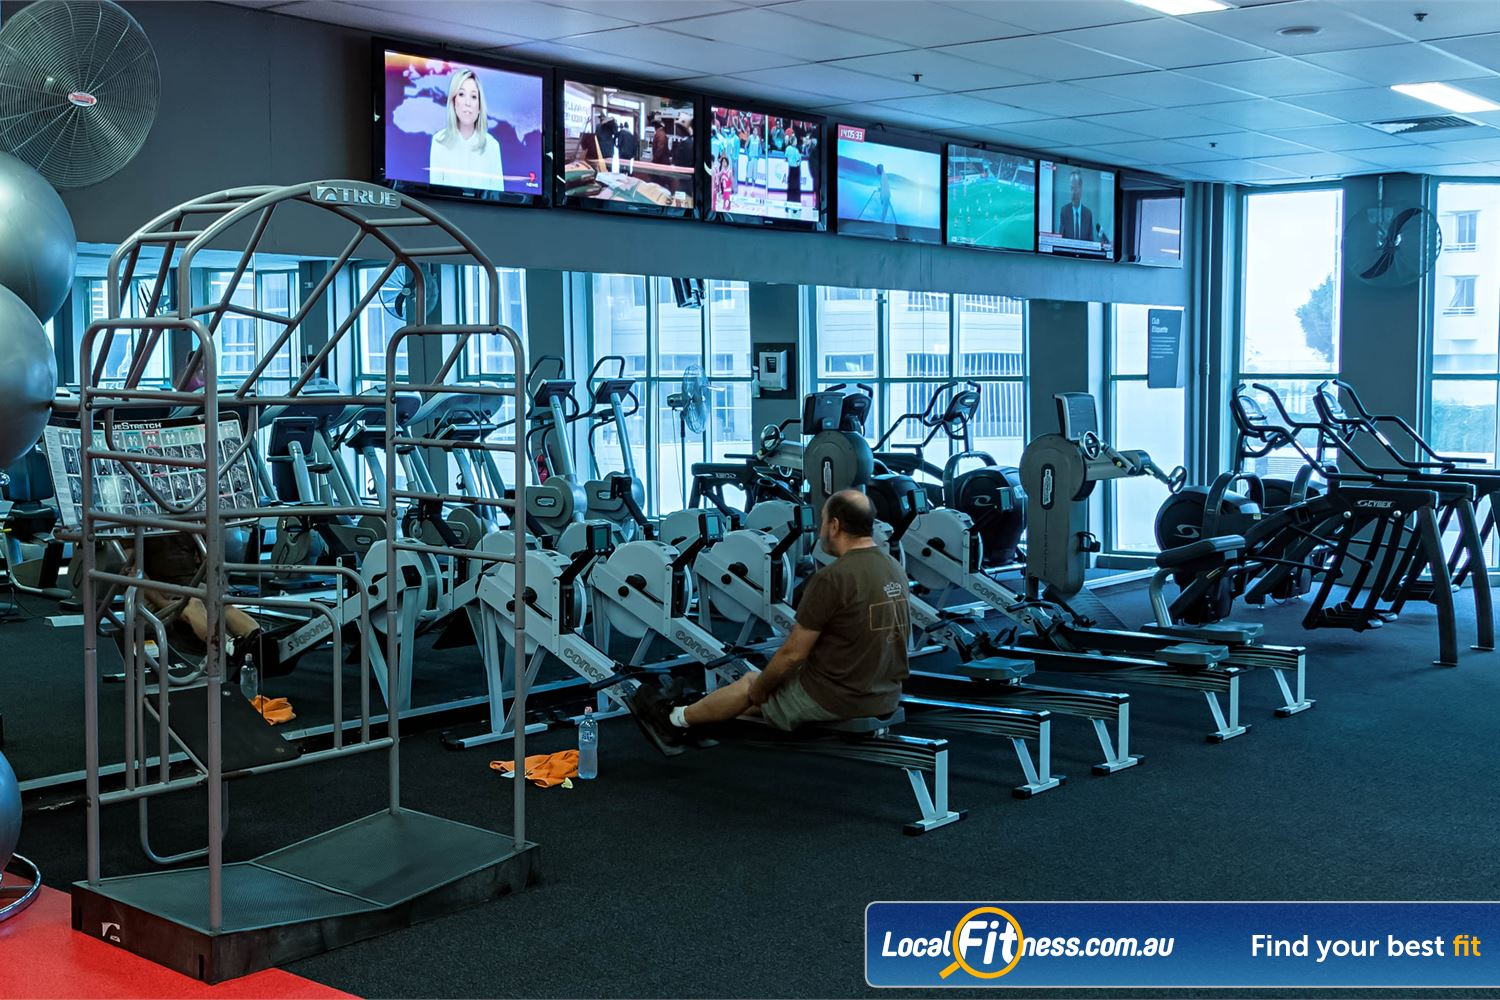 Fitness First Platinum Spring St Bondi Junction Our cardio area includes cross-trainers, treadmills, rowers and more.